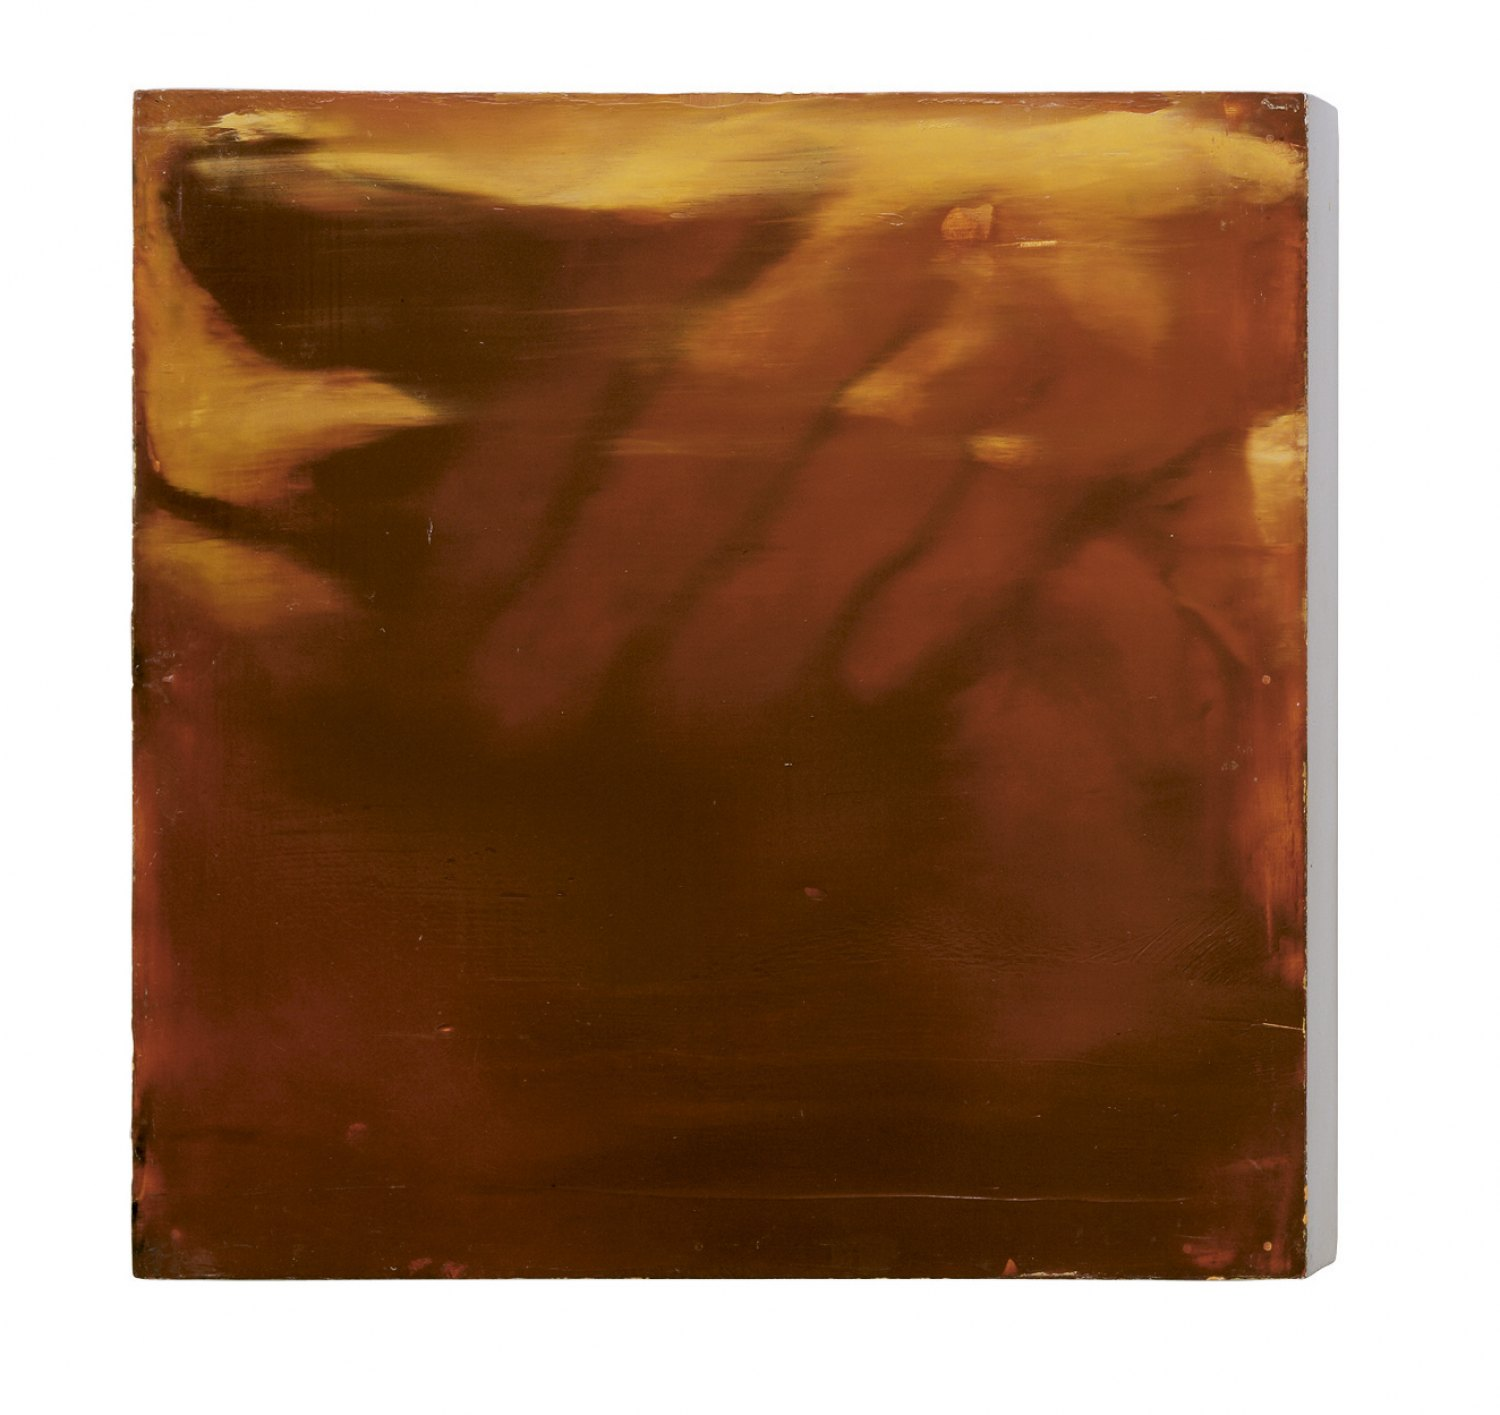 Ull Hohn Untitled, 1989 Oil and varnish on wood, 35.56 × 35.56 × 5.08 cm